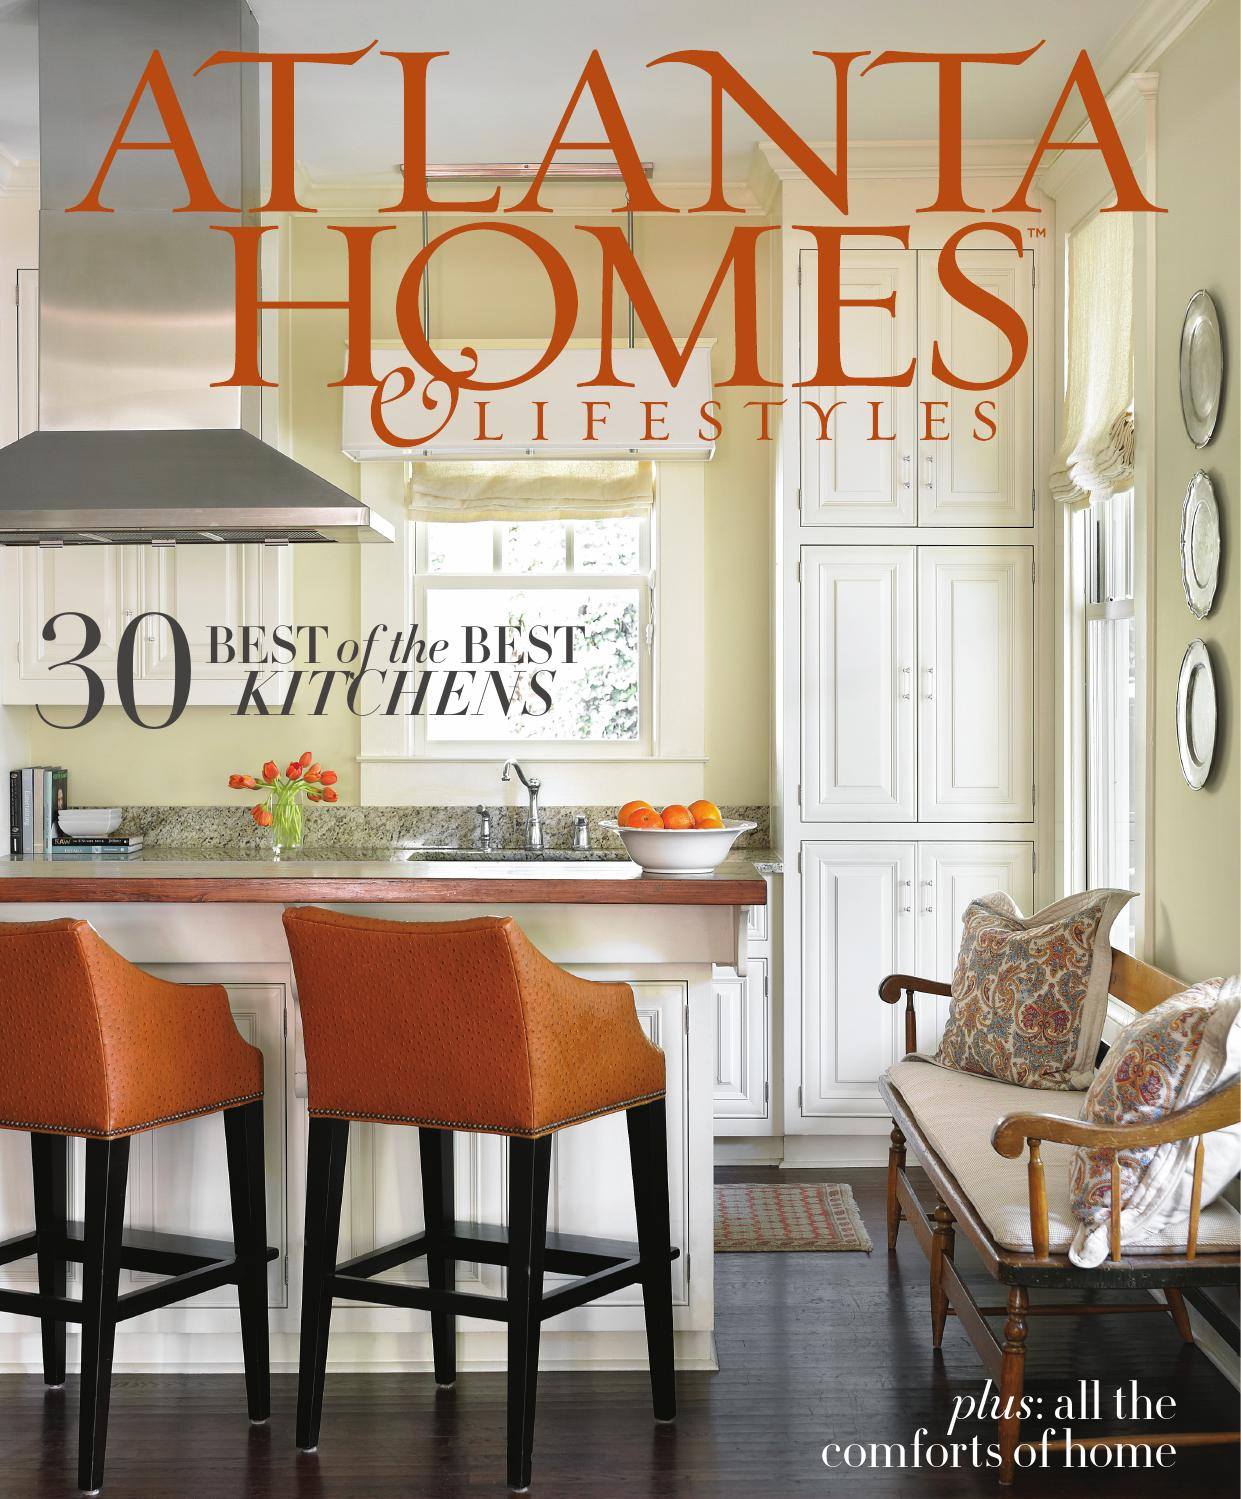 We're prominently featured in slide 22 of  Atlanta Homes & Lifestyles'  feature on  25 Years of the City's Best Kitchens .